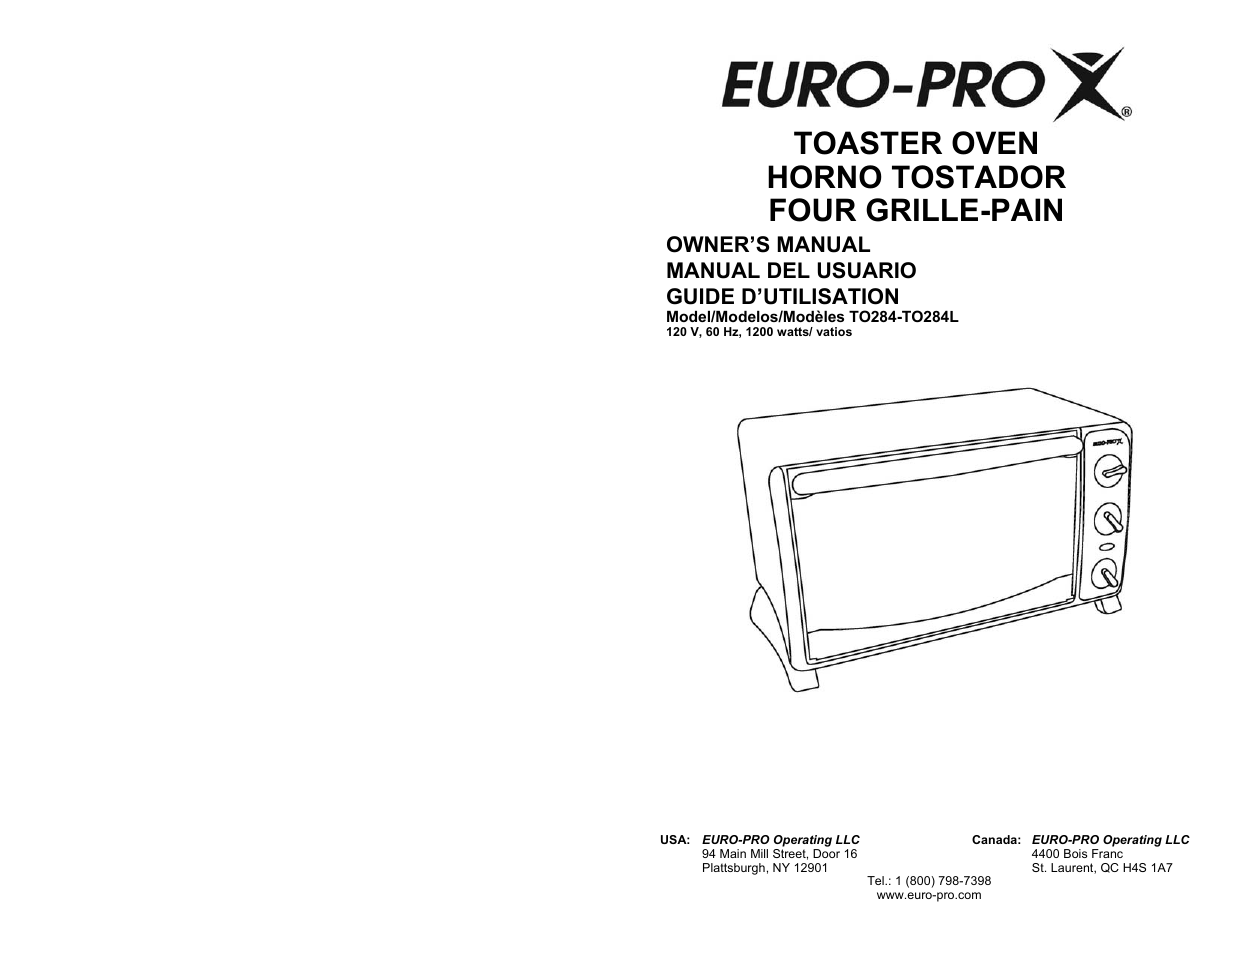 euro pro to284l user manual 16 pages also for to284 rh manualsdir com Euro-Pro Toaster Oven at Walmart Euro-Pro Deep Fryer